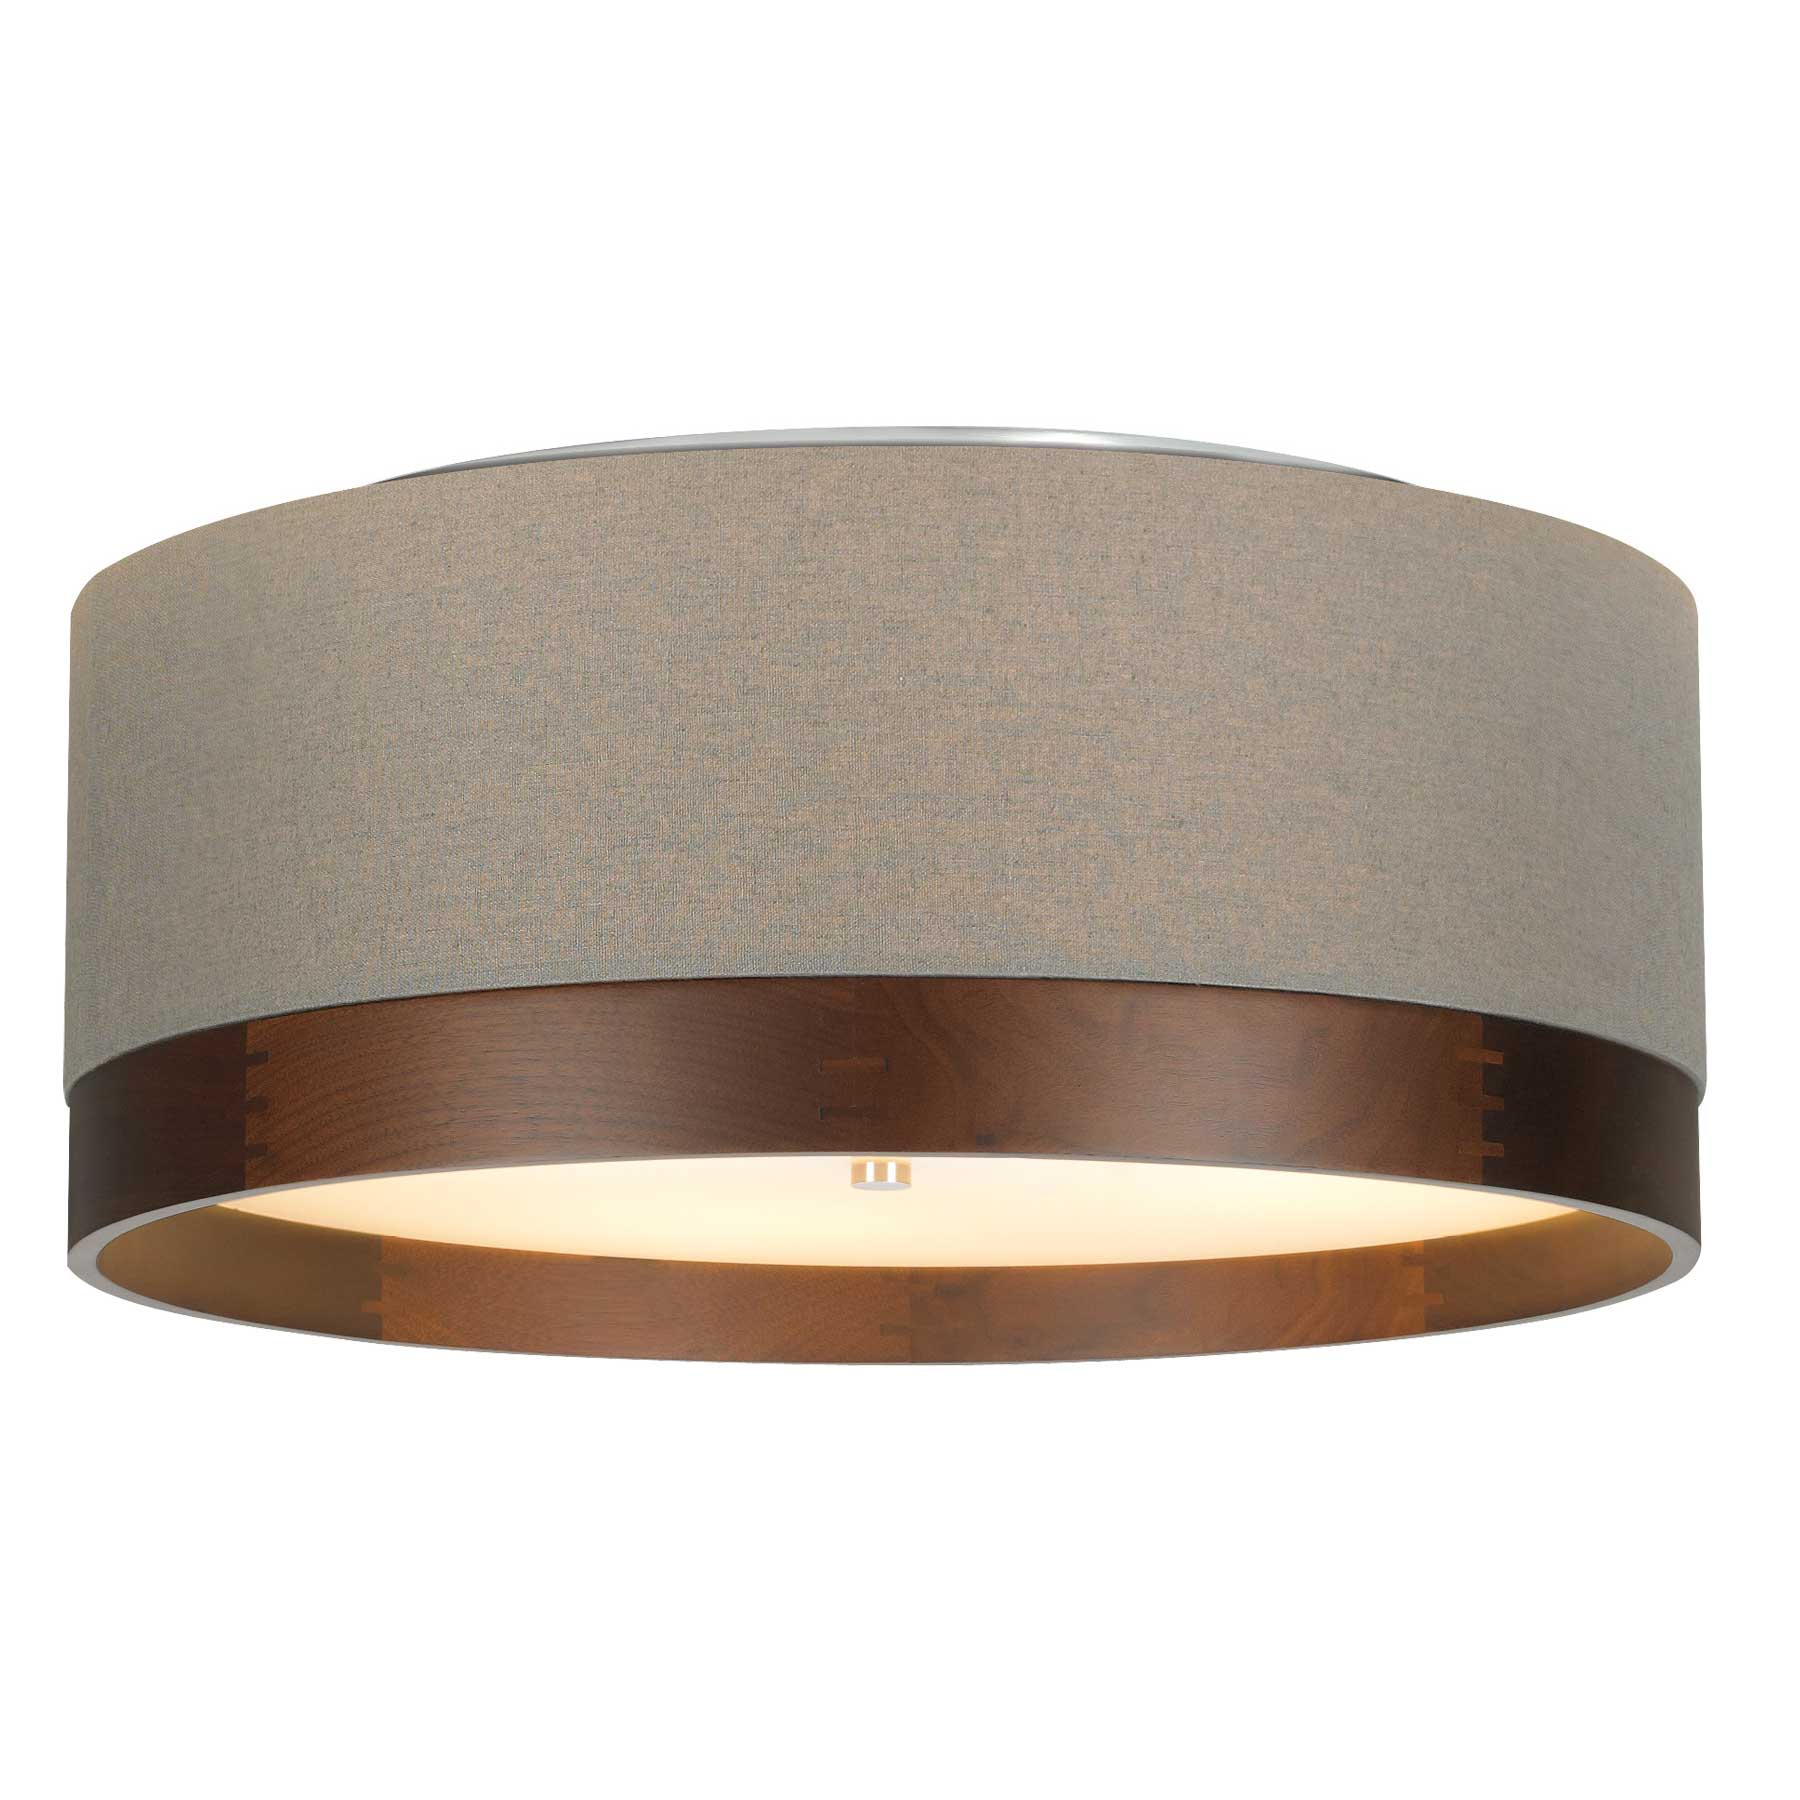 Topo flush mount ceiling light by tech lighting 700fmtpoyws topo flush mount ceiling light aloadofball